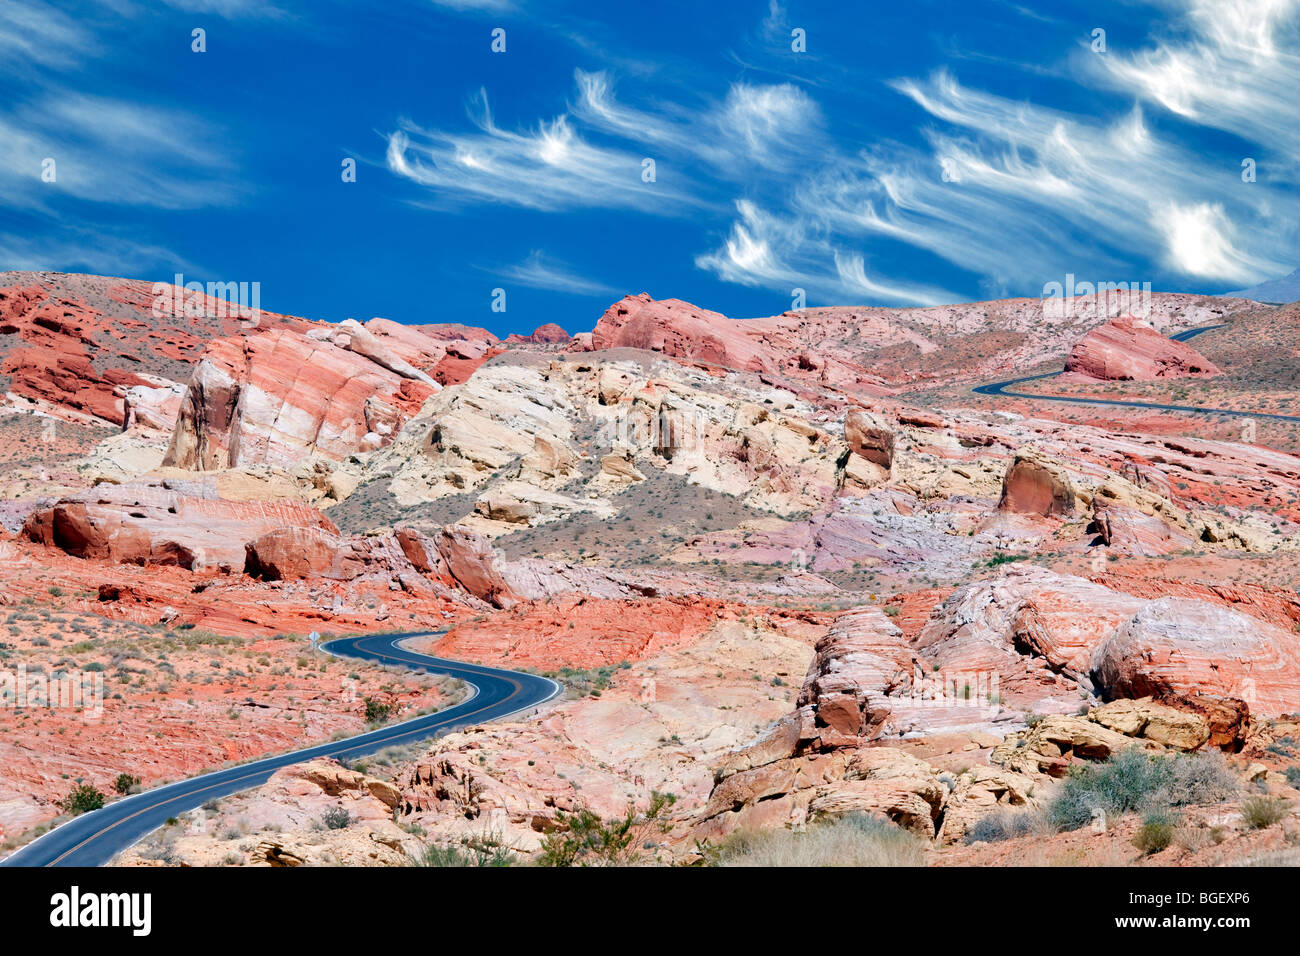 Road through Valley of Fire State Park, Nevada. Sky has been added. - Stock Image